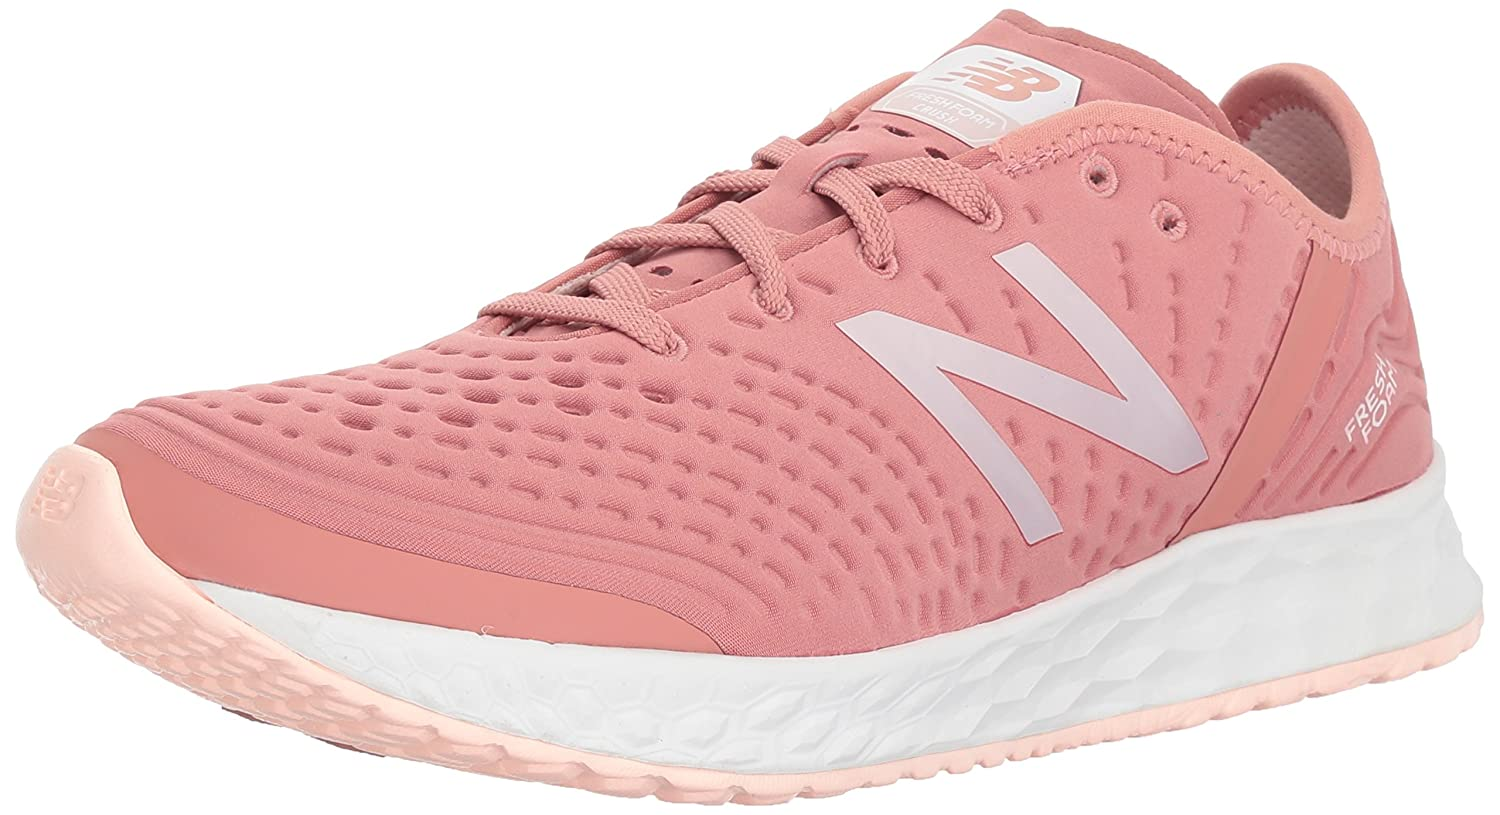 Rose Sunrise Glo New Balance Fresh Foam Crush Chaussures de Training pour Femme 36.5 EU